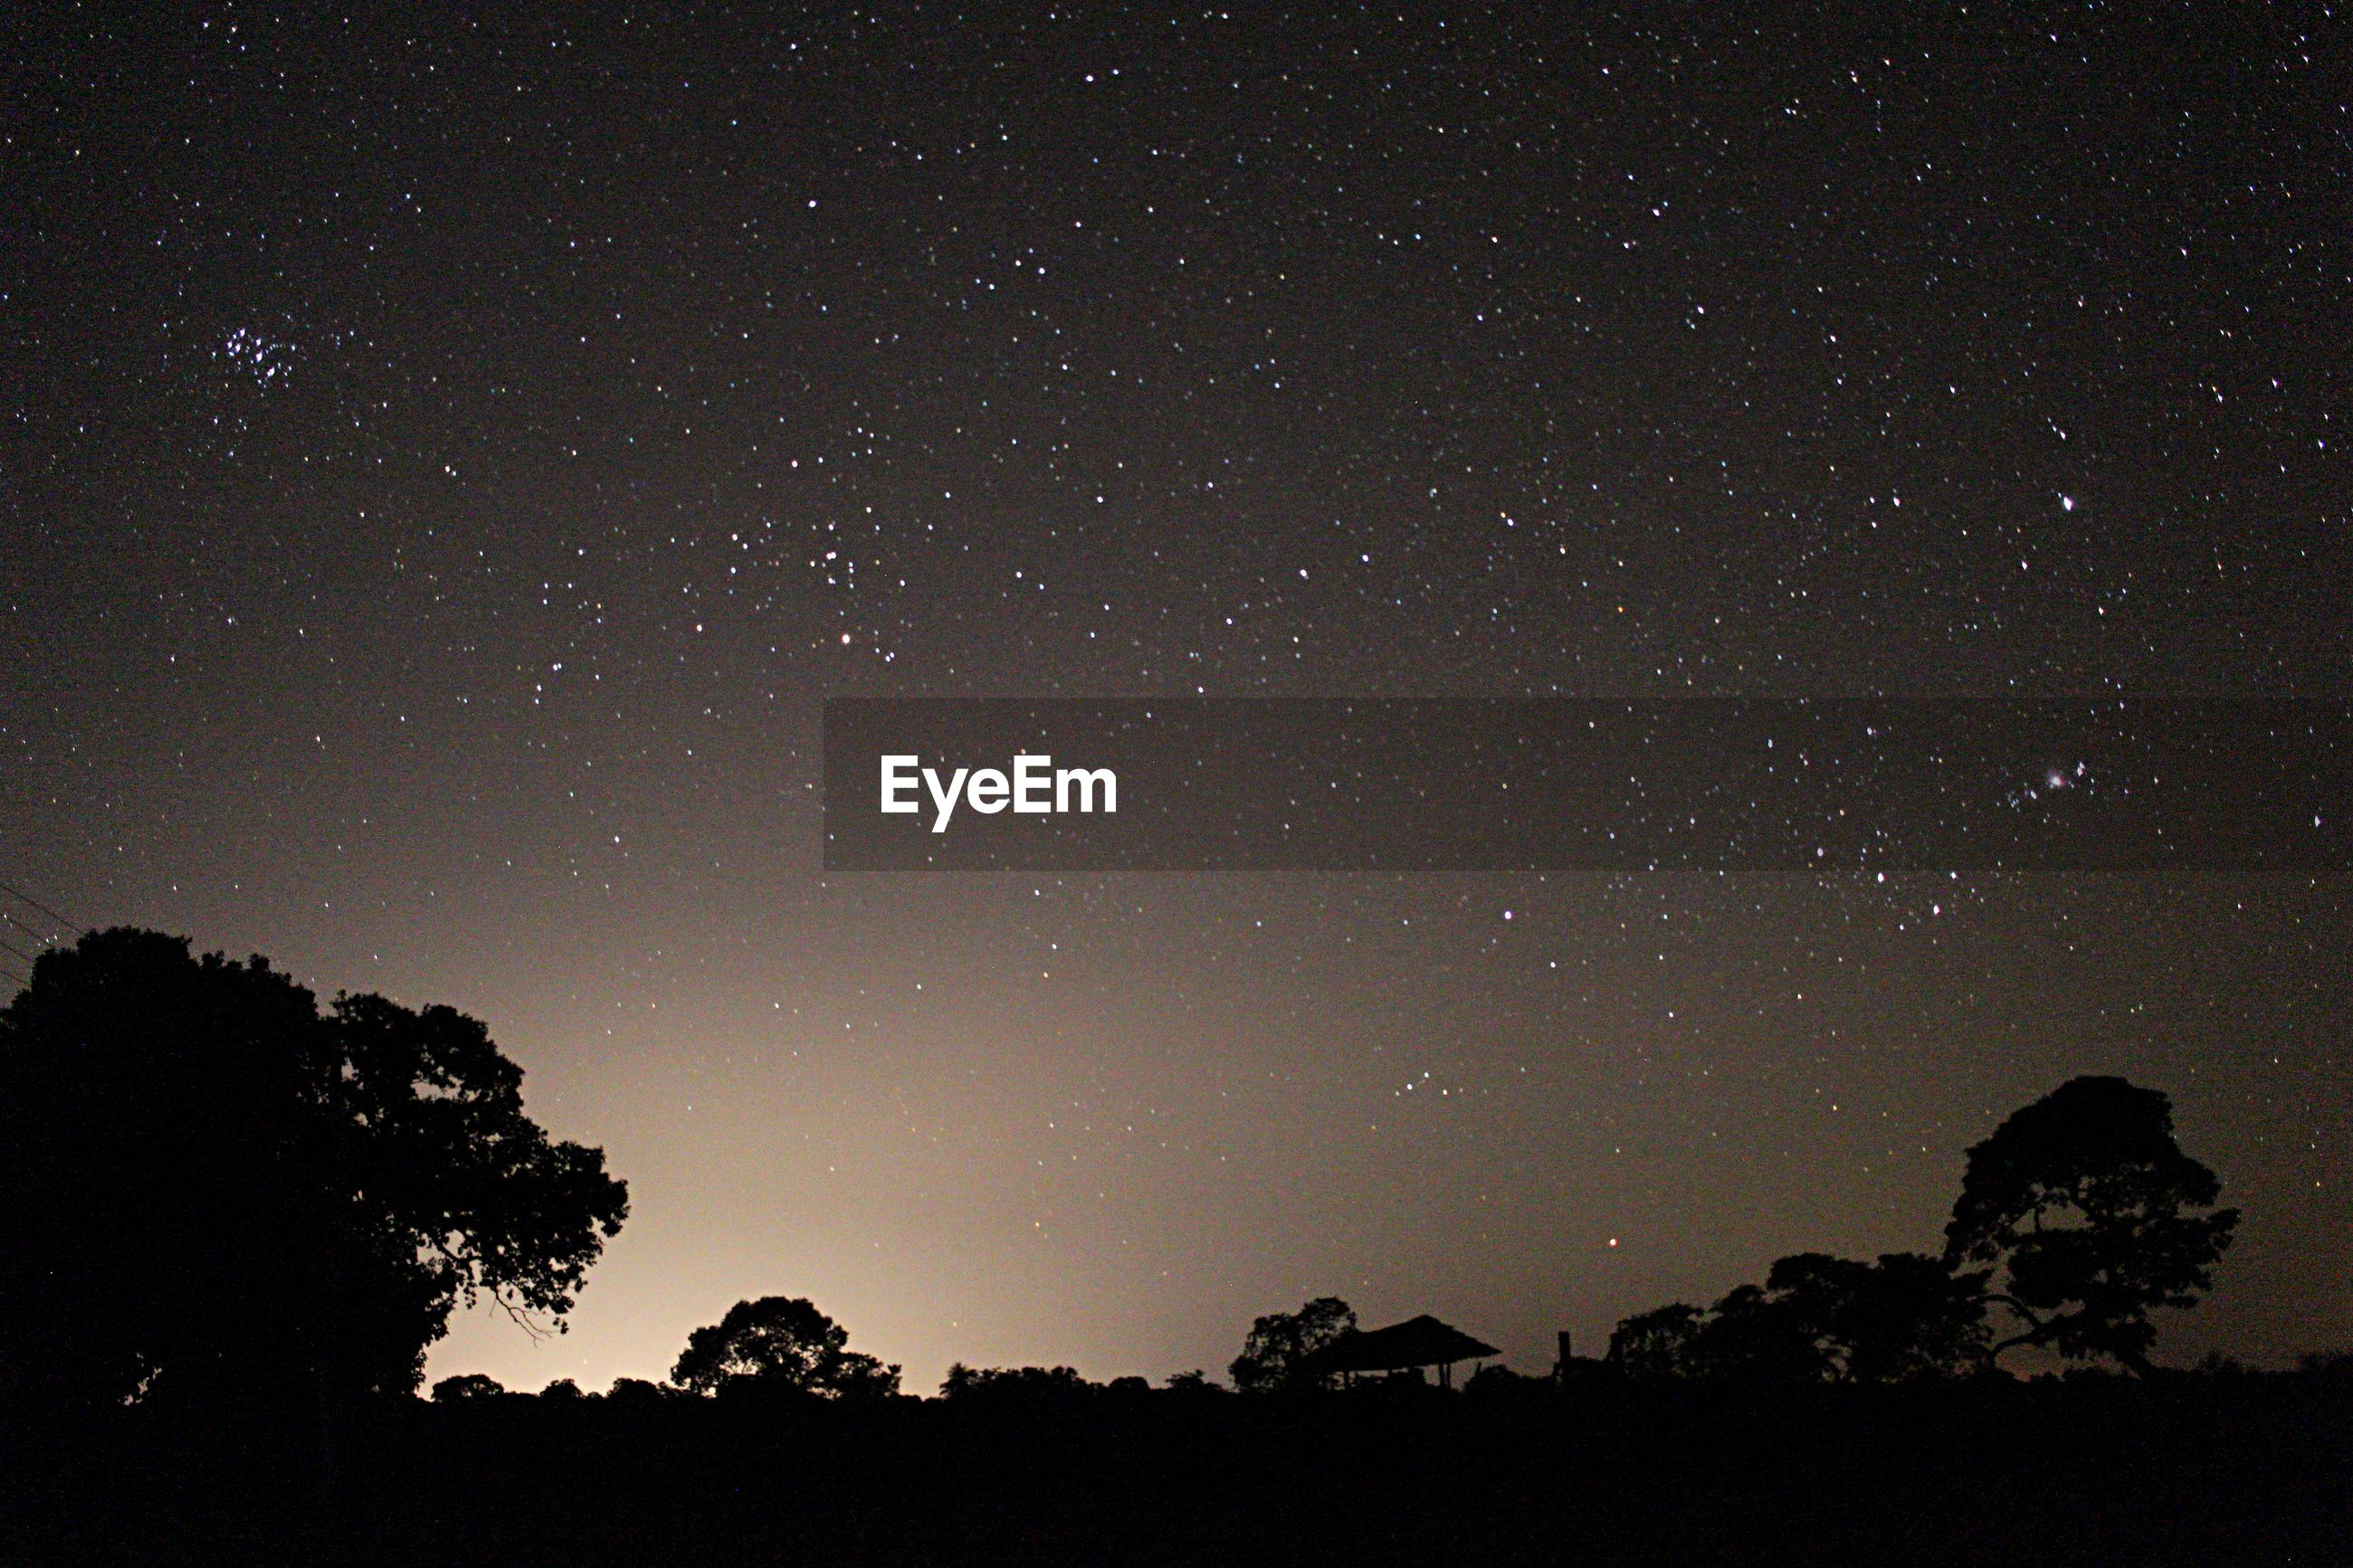 LOW ANGLE VIEW OF SILHOUETTE TREES AGAINST STAR FIELD AGAINST SKY